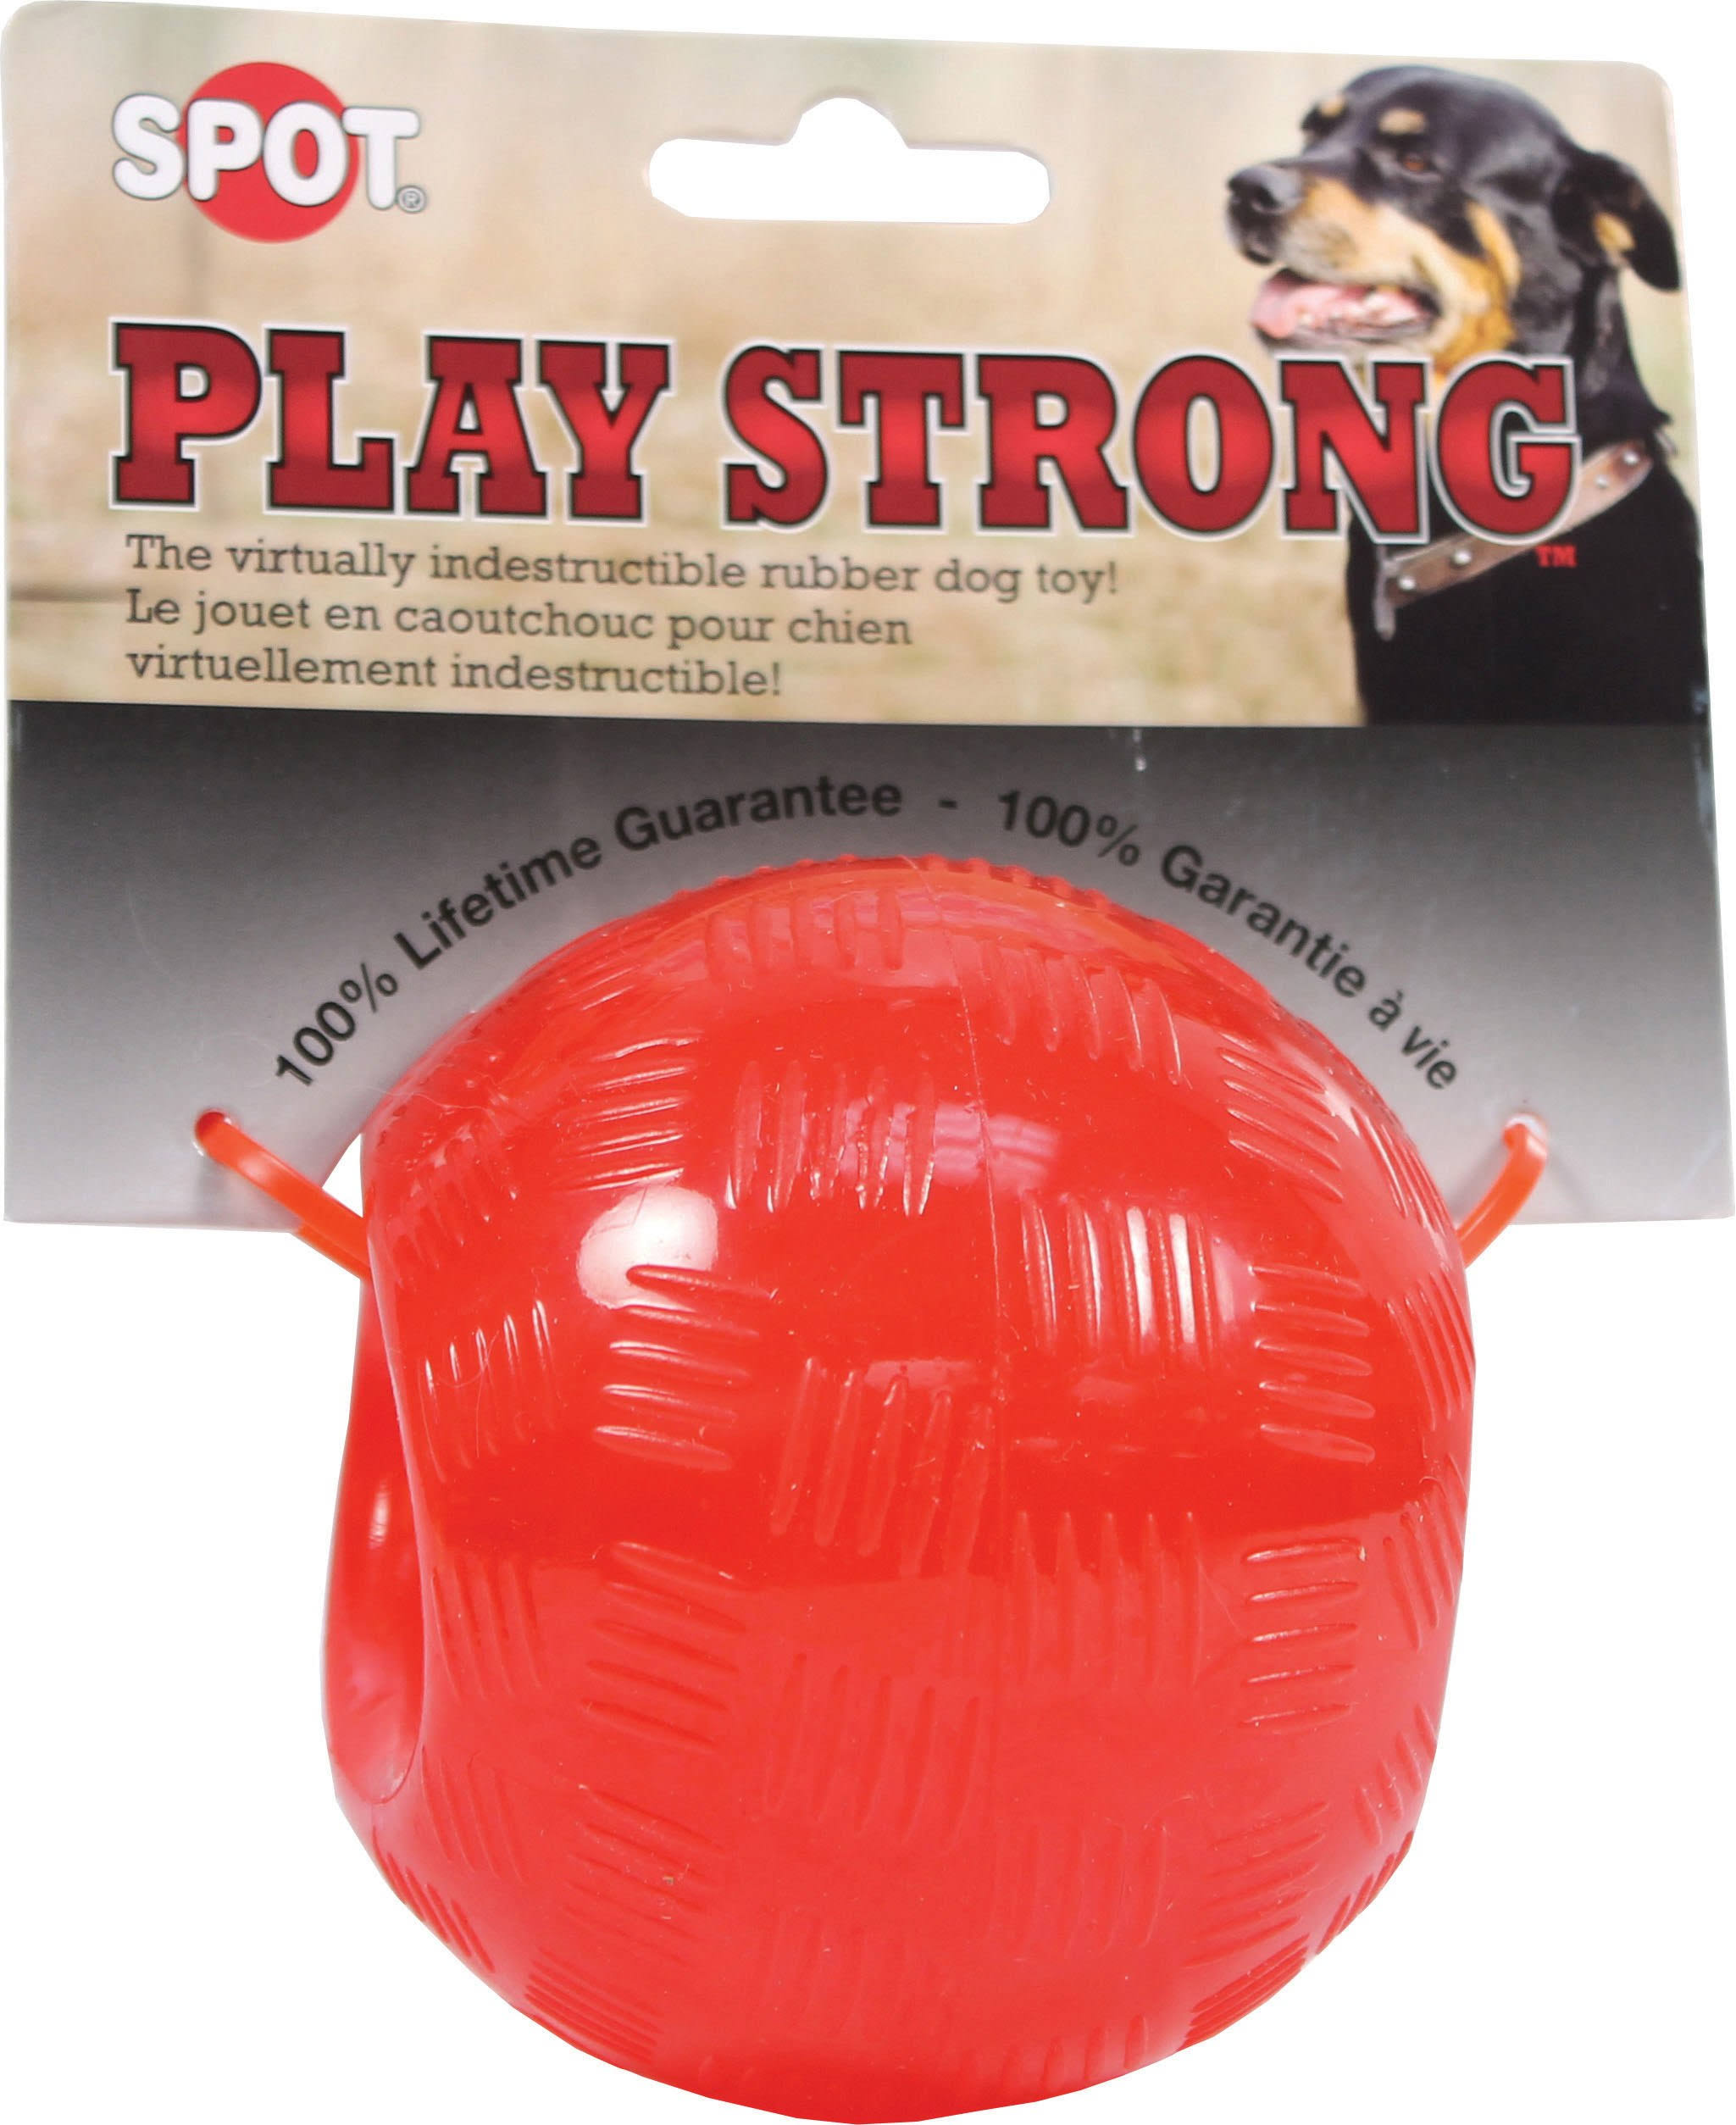 Spot Play Strong Rubber Ball Dog Toy - Large